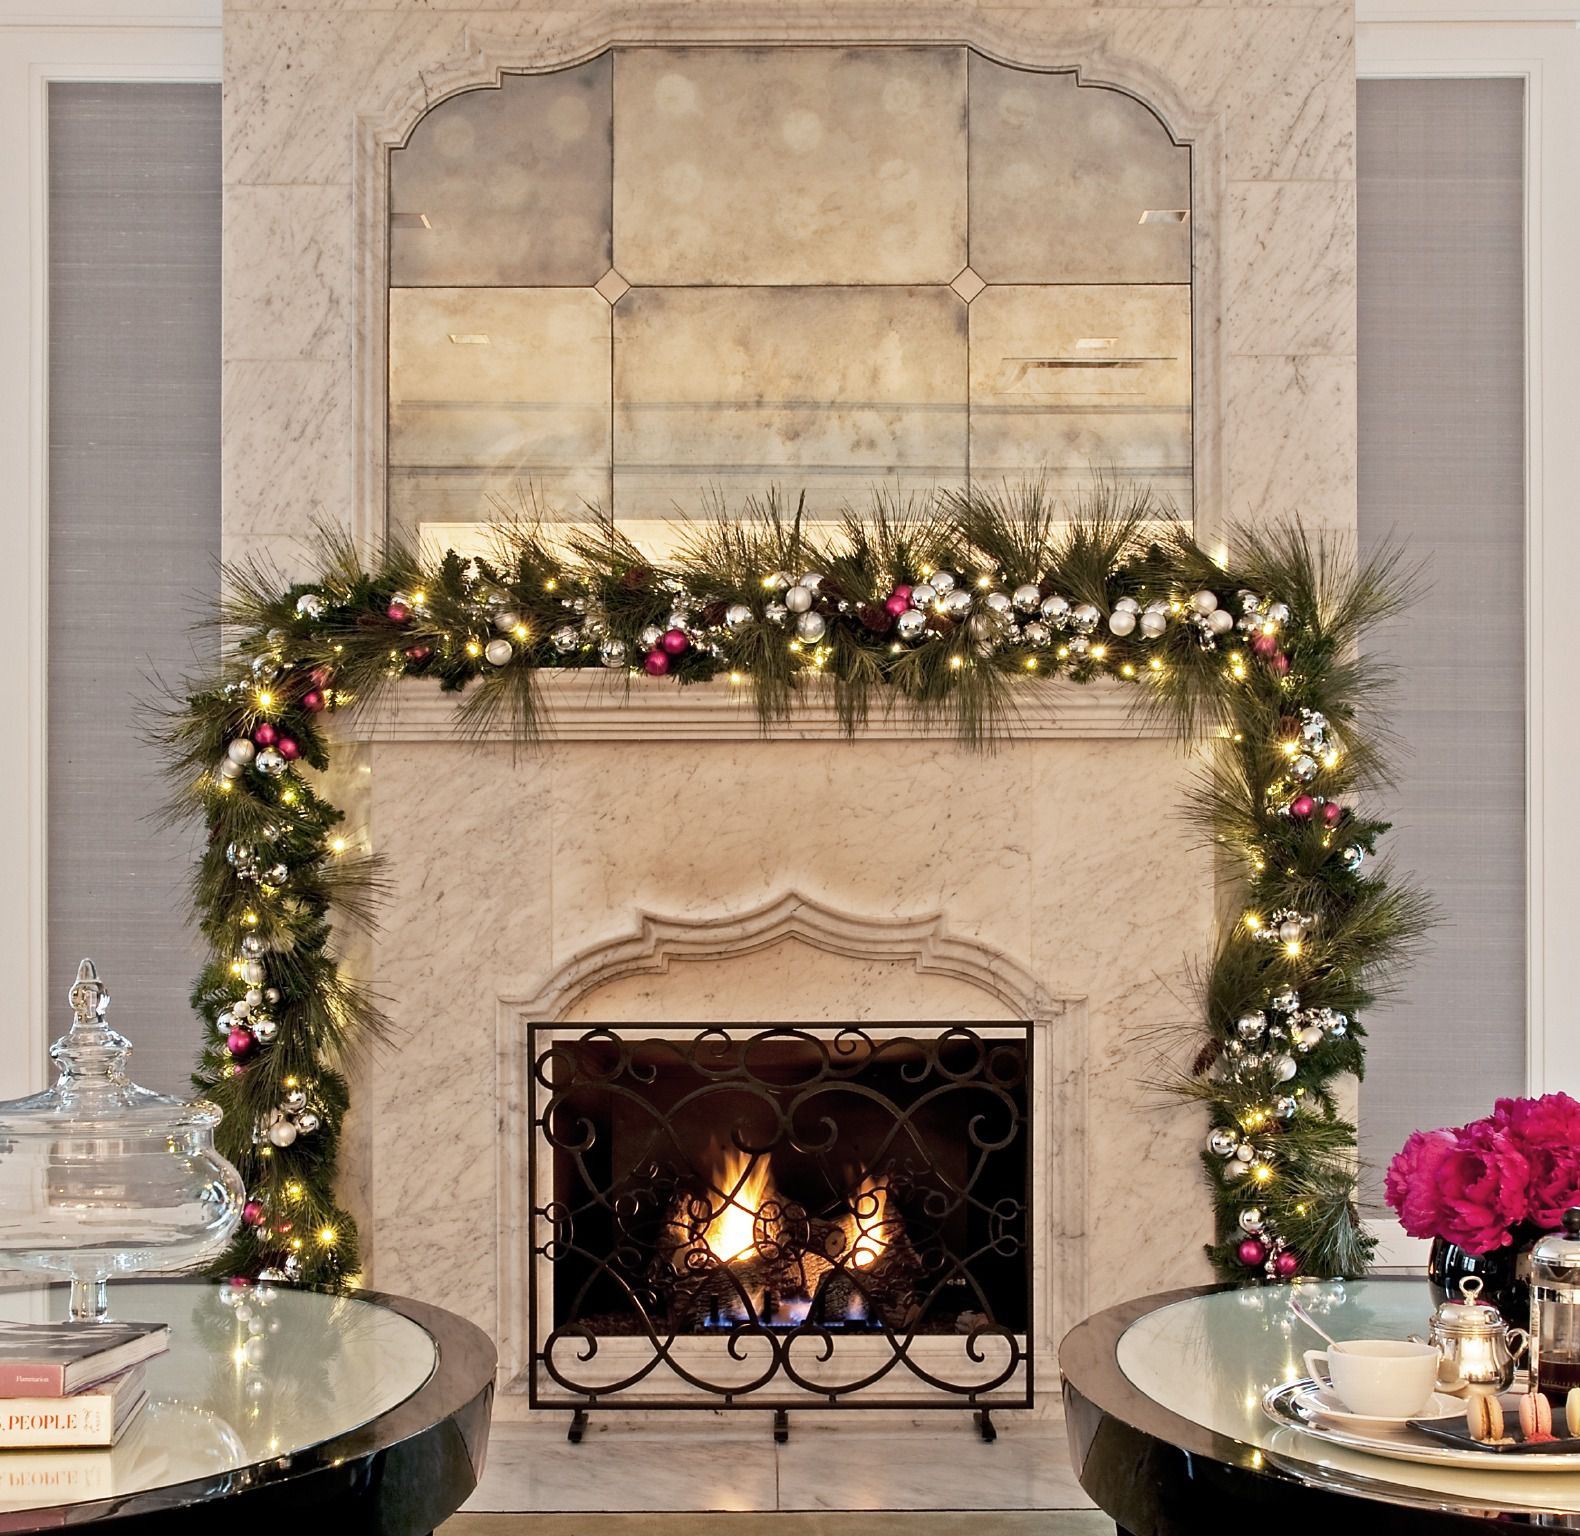 Savor the Season with Afternoon Holiday Tea Service in Chicago